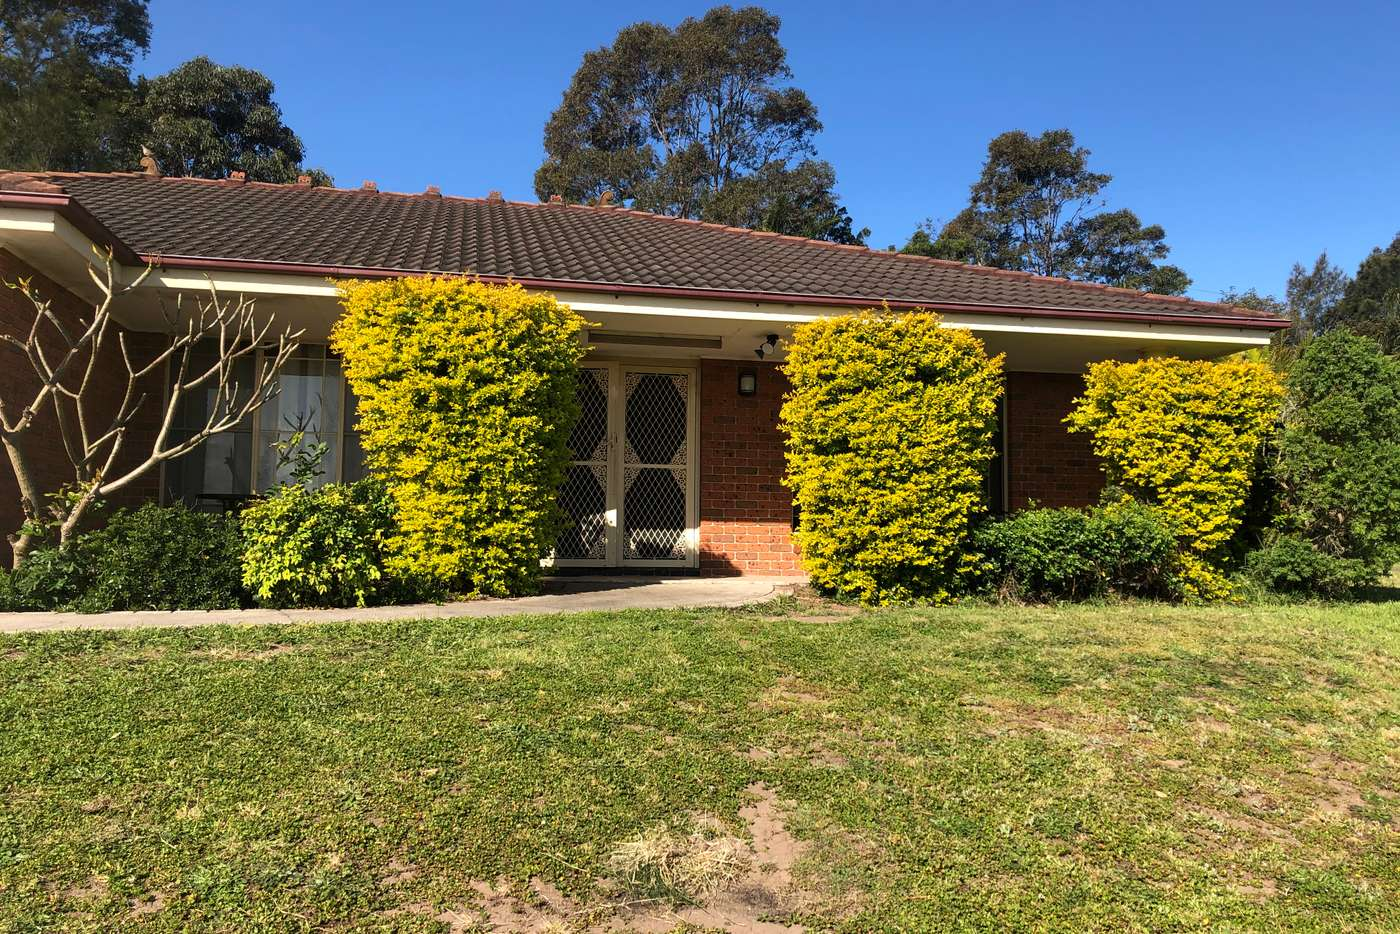 Main view of Homely house listing, 16 O'learia Crescent, Warabrook NSW 2304